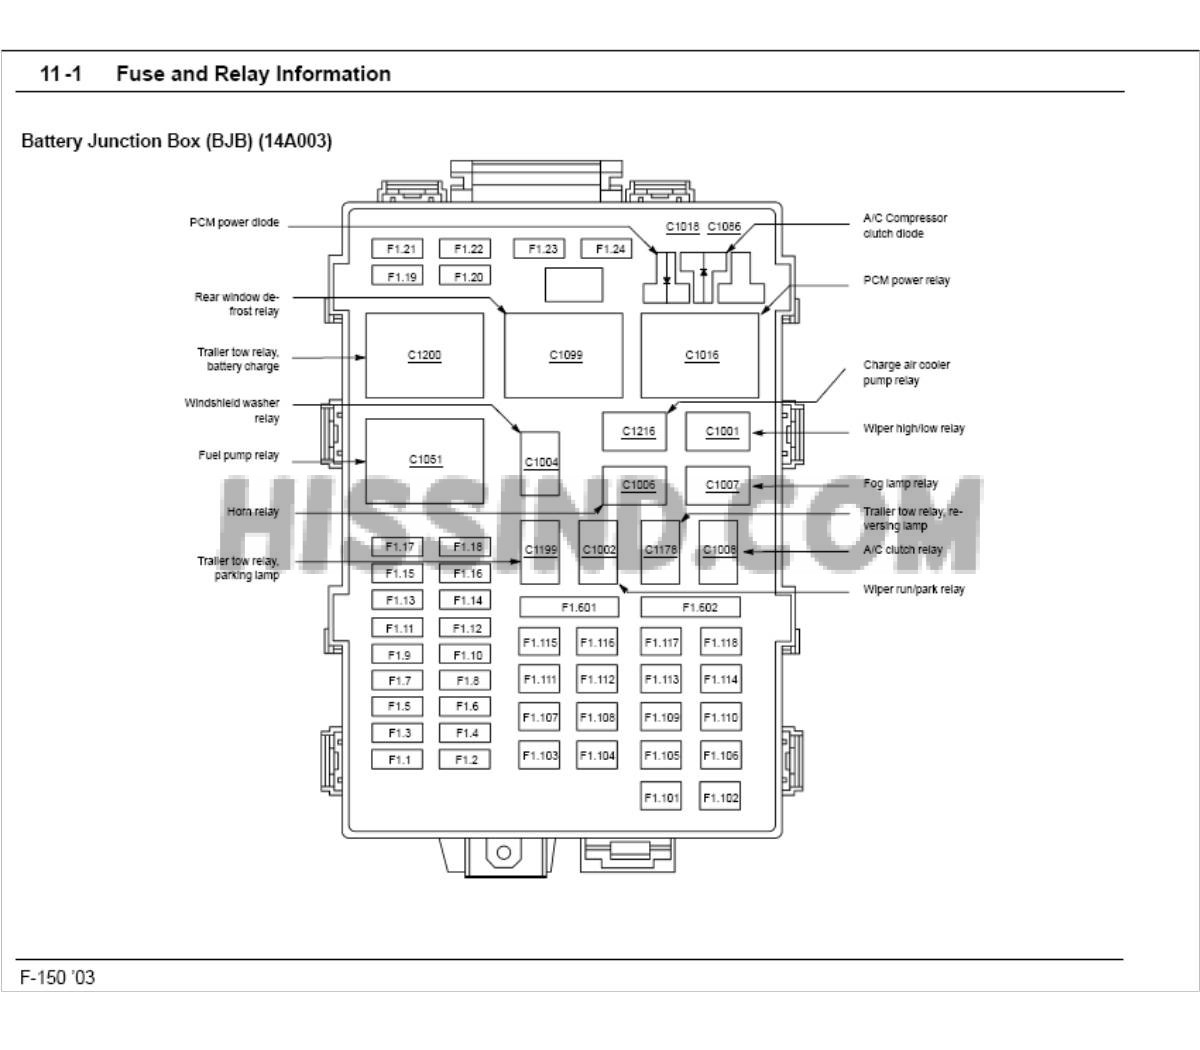 01 Ford E 150 Fuse Box Diagram For F150 Panel Explained Wiring Diagrams Layout Electrical Odyssey 02